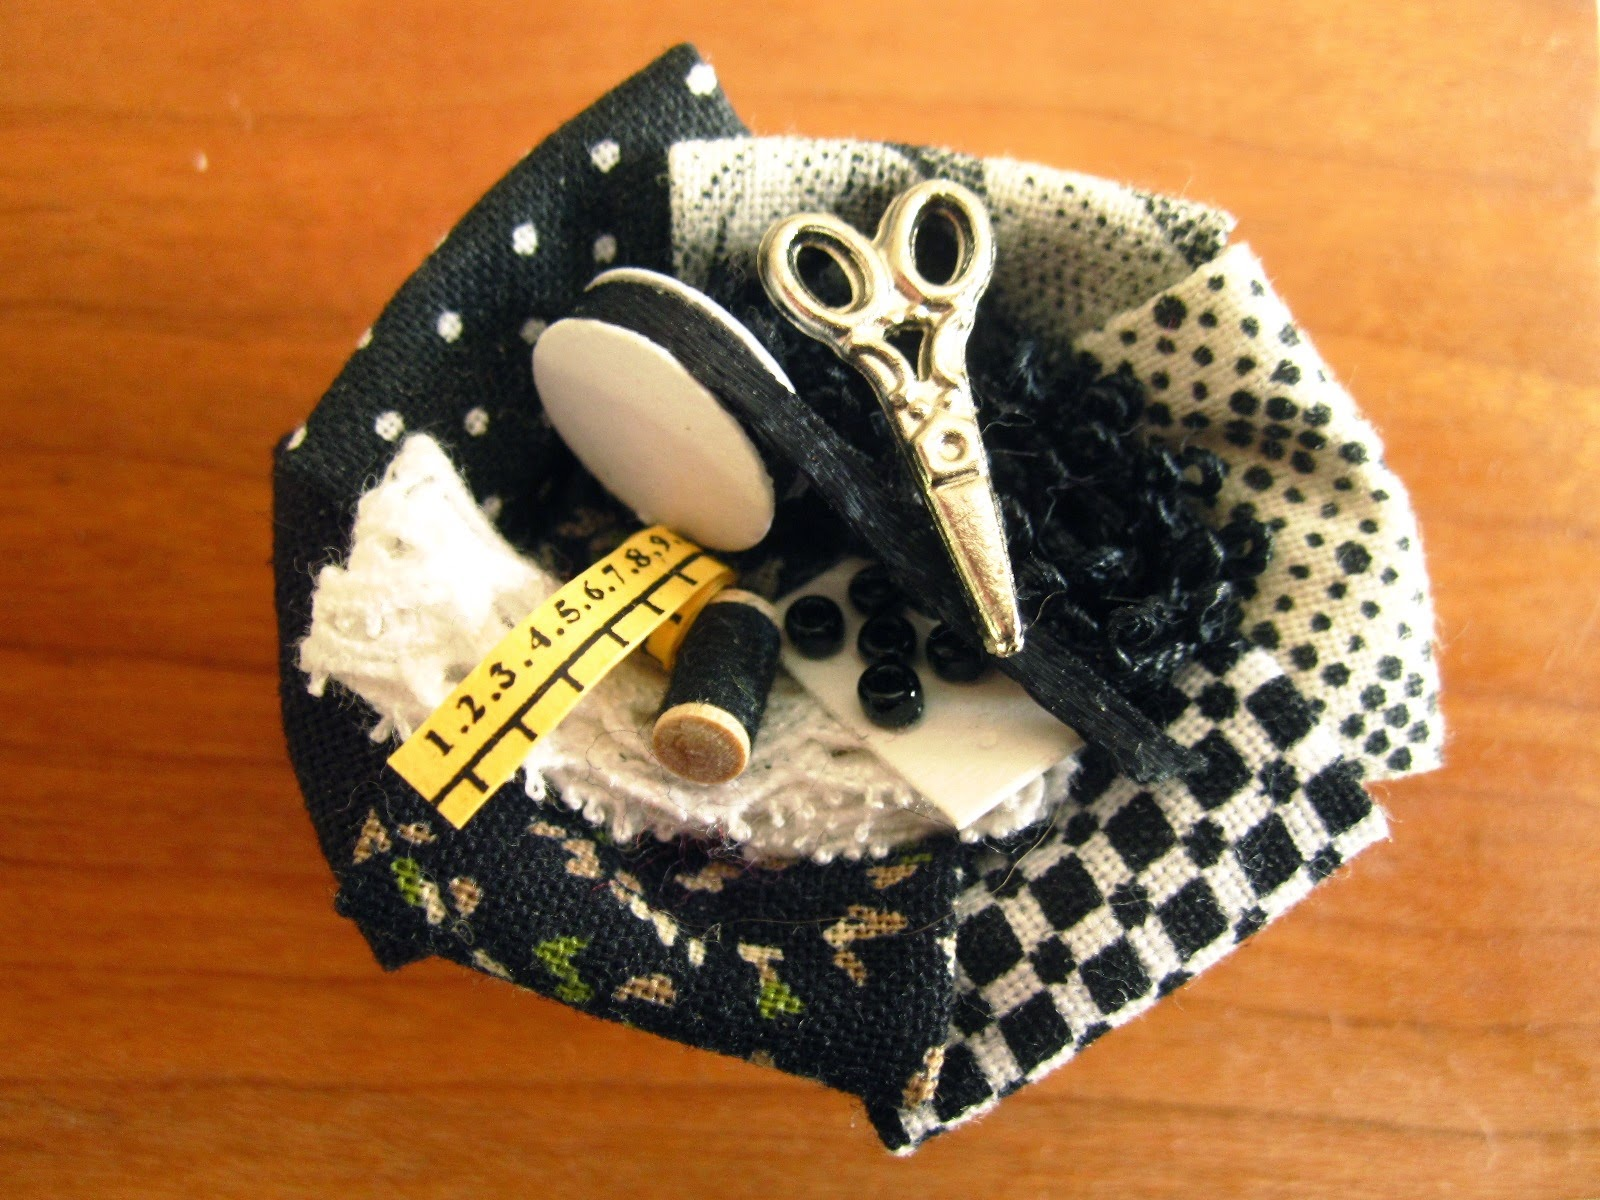 Dolls' house miniature sewing basket with various fabrics and notions in black and white, plus scissors and a tape measure.